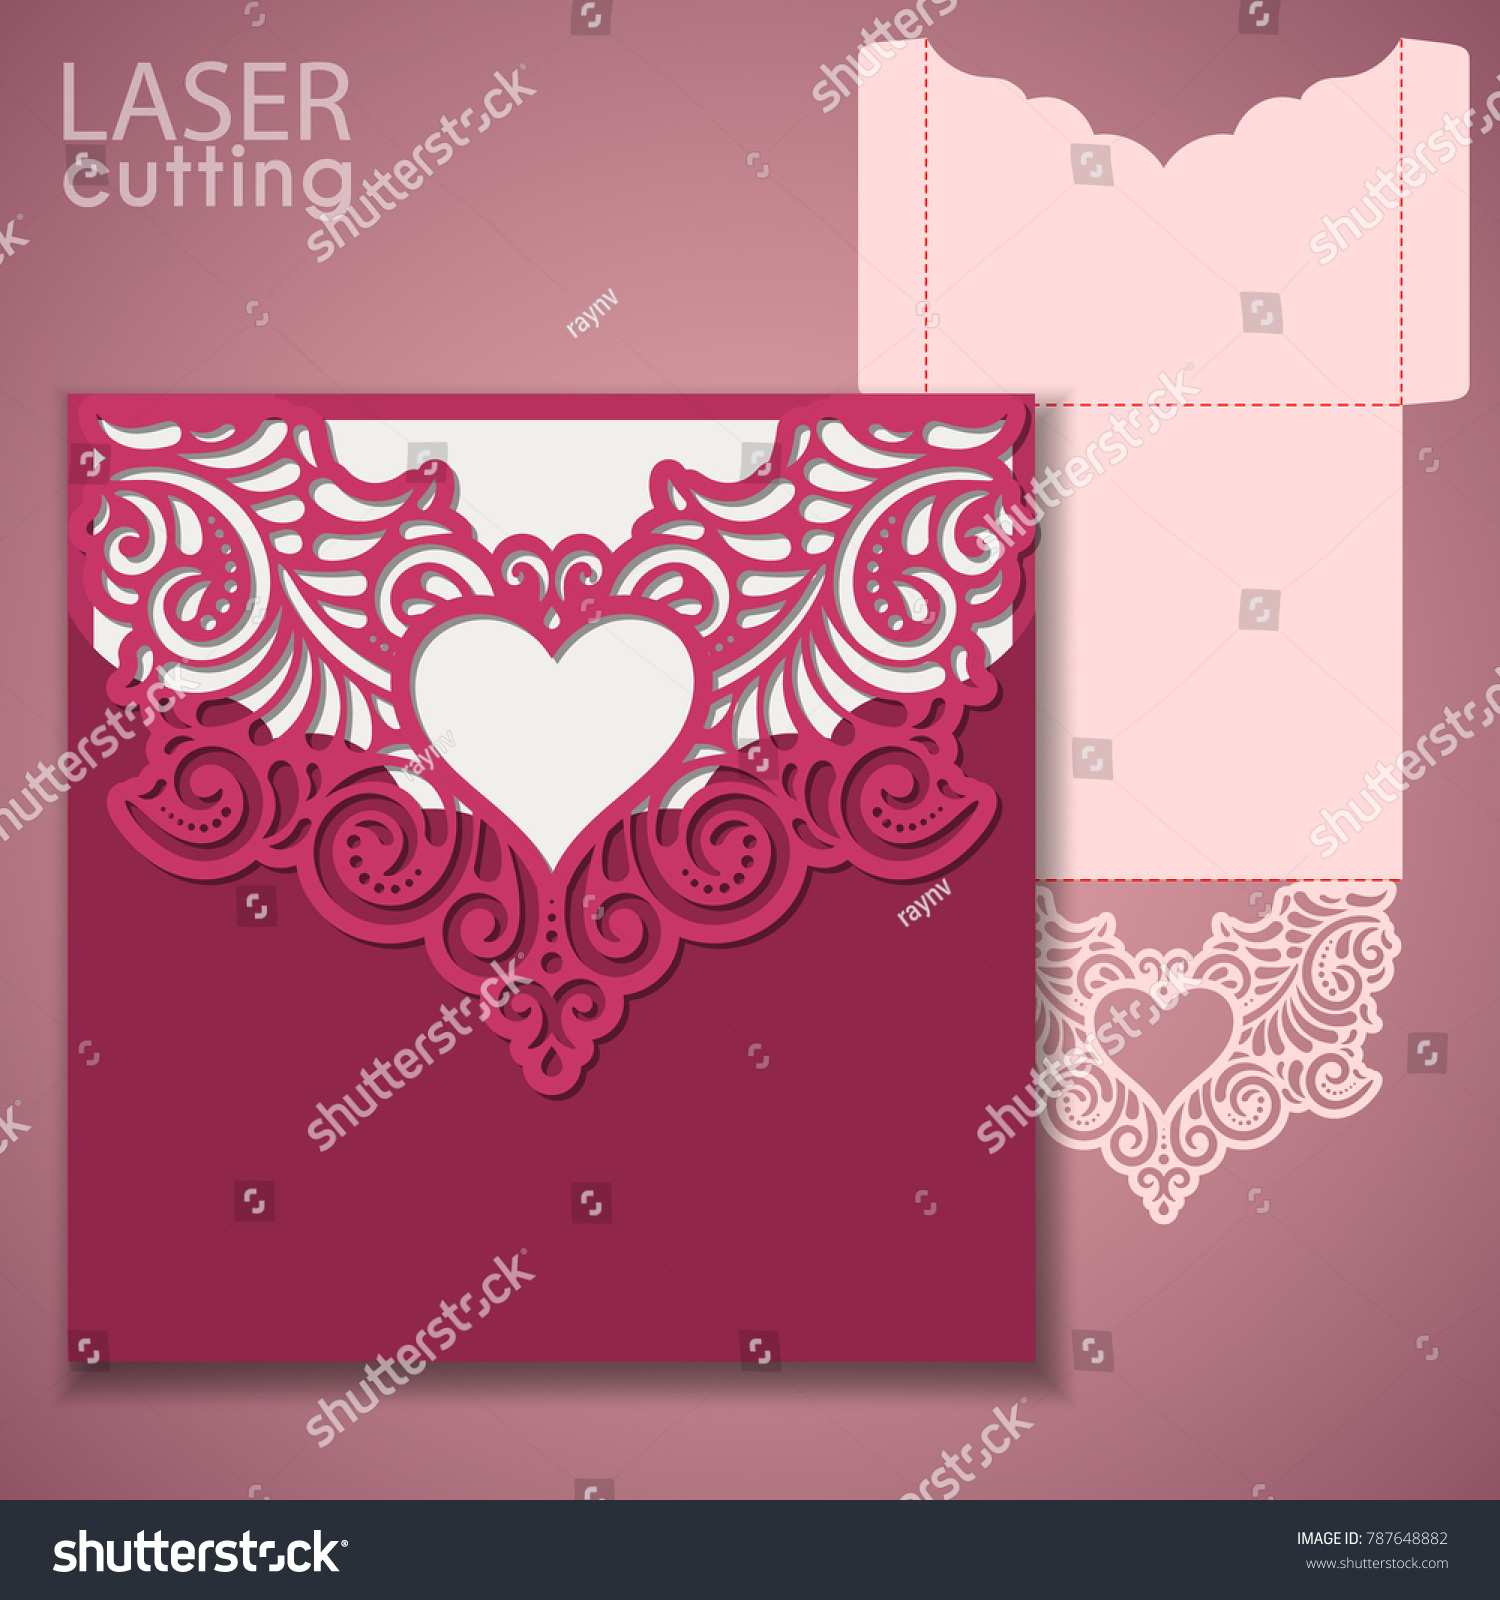 Laser Cut Wedding Invitation Greeting Card Stock Vector (Royalty ...